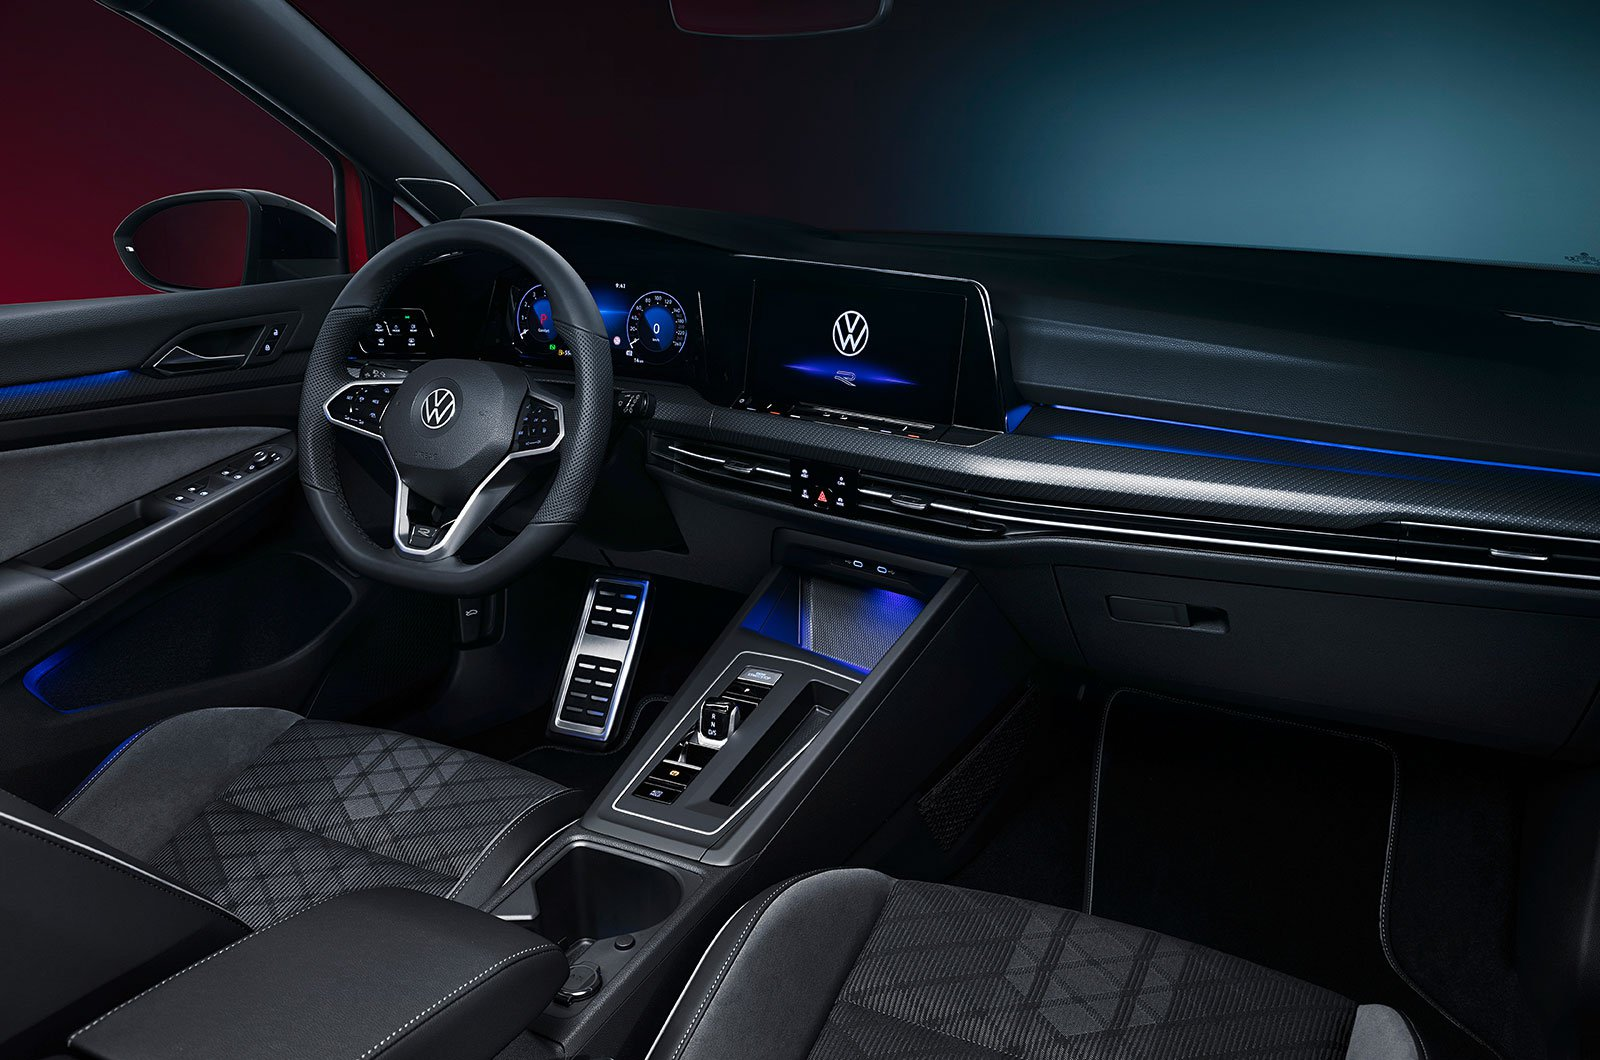 2021 Volkswagen Golf Estate interior